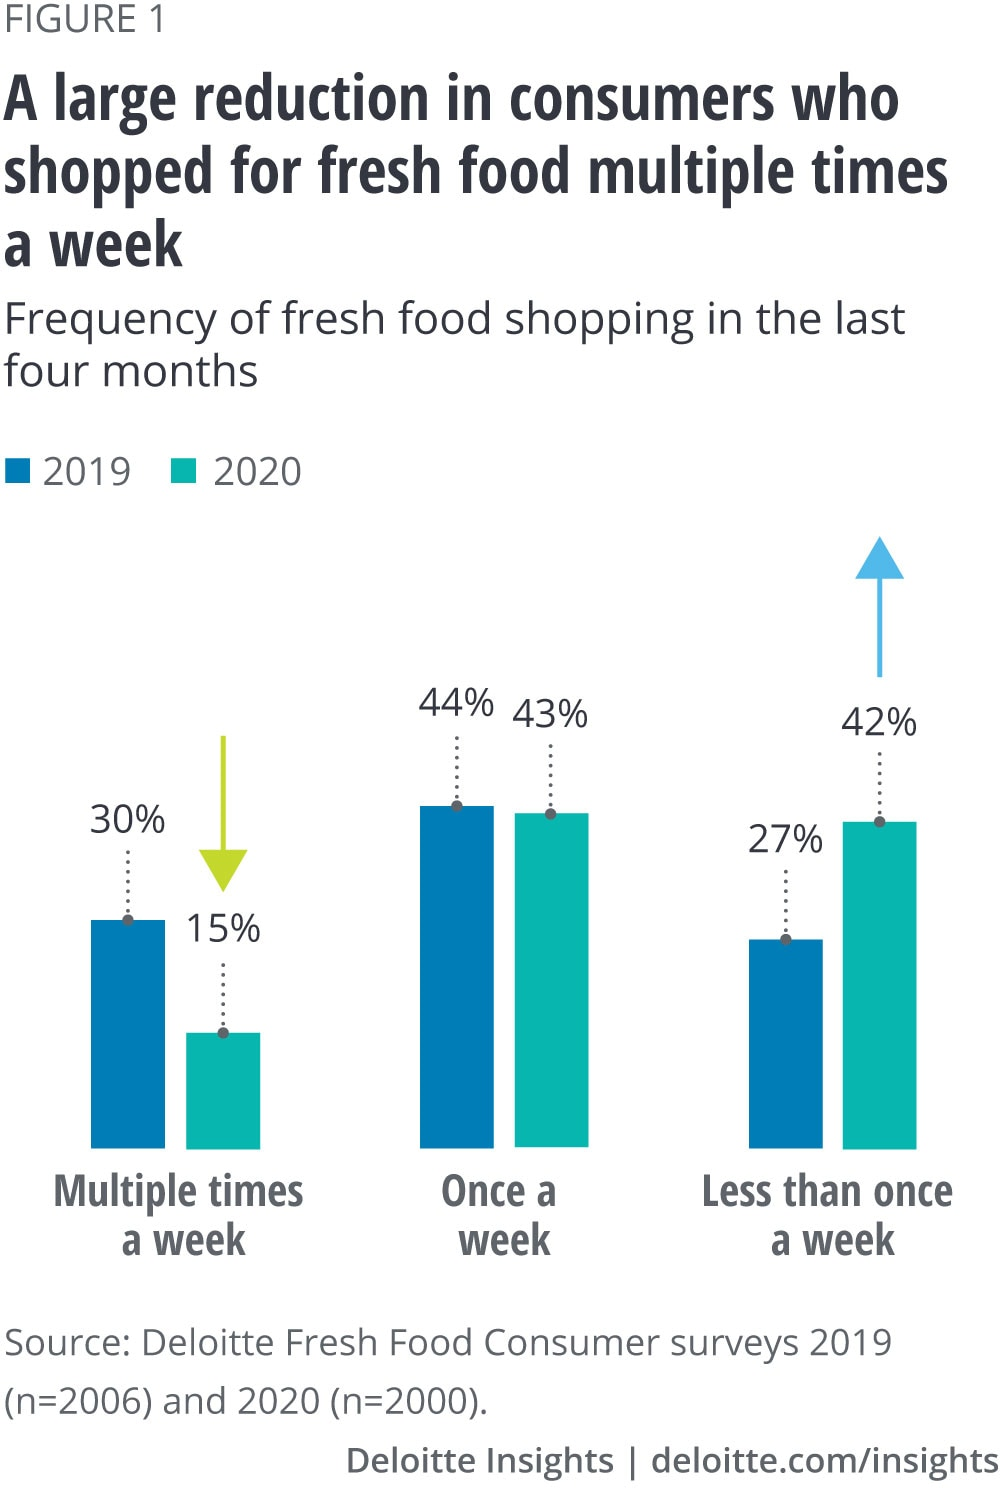 A large reduction in consumers who shopped for fresh food multiple times a week